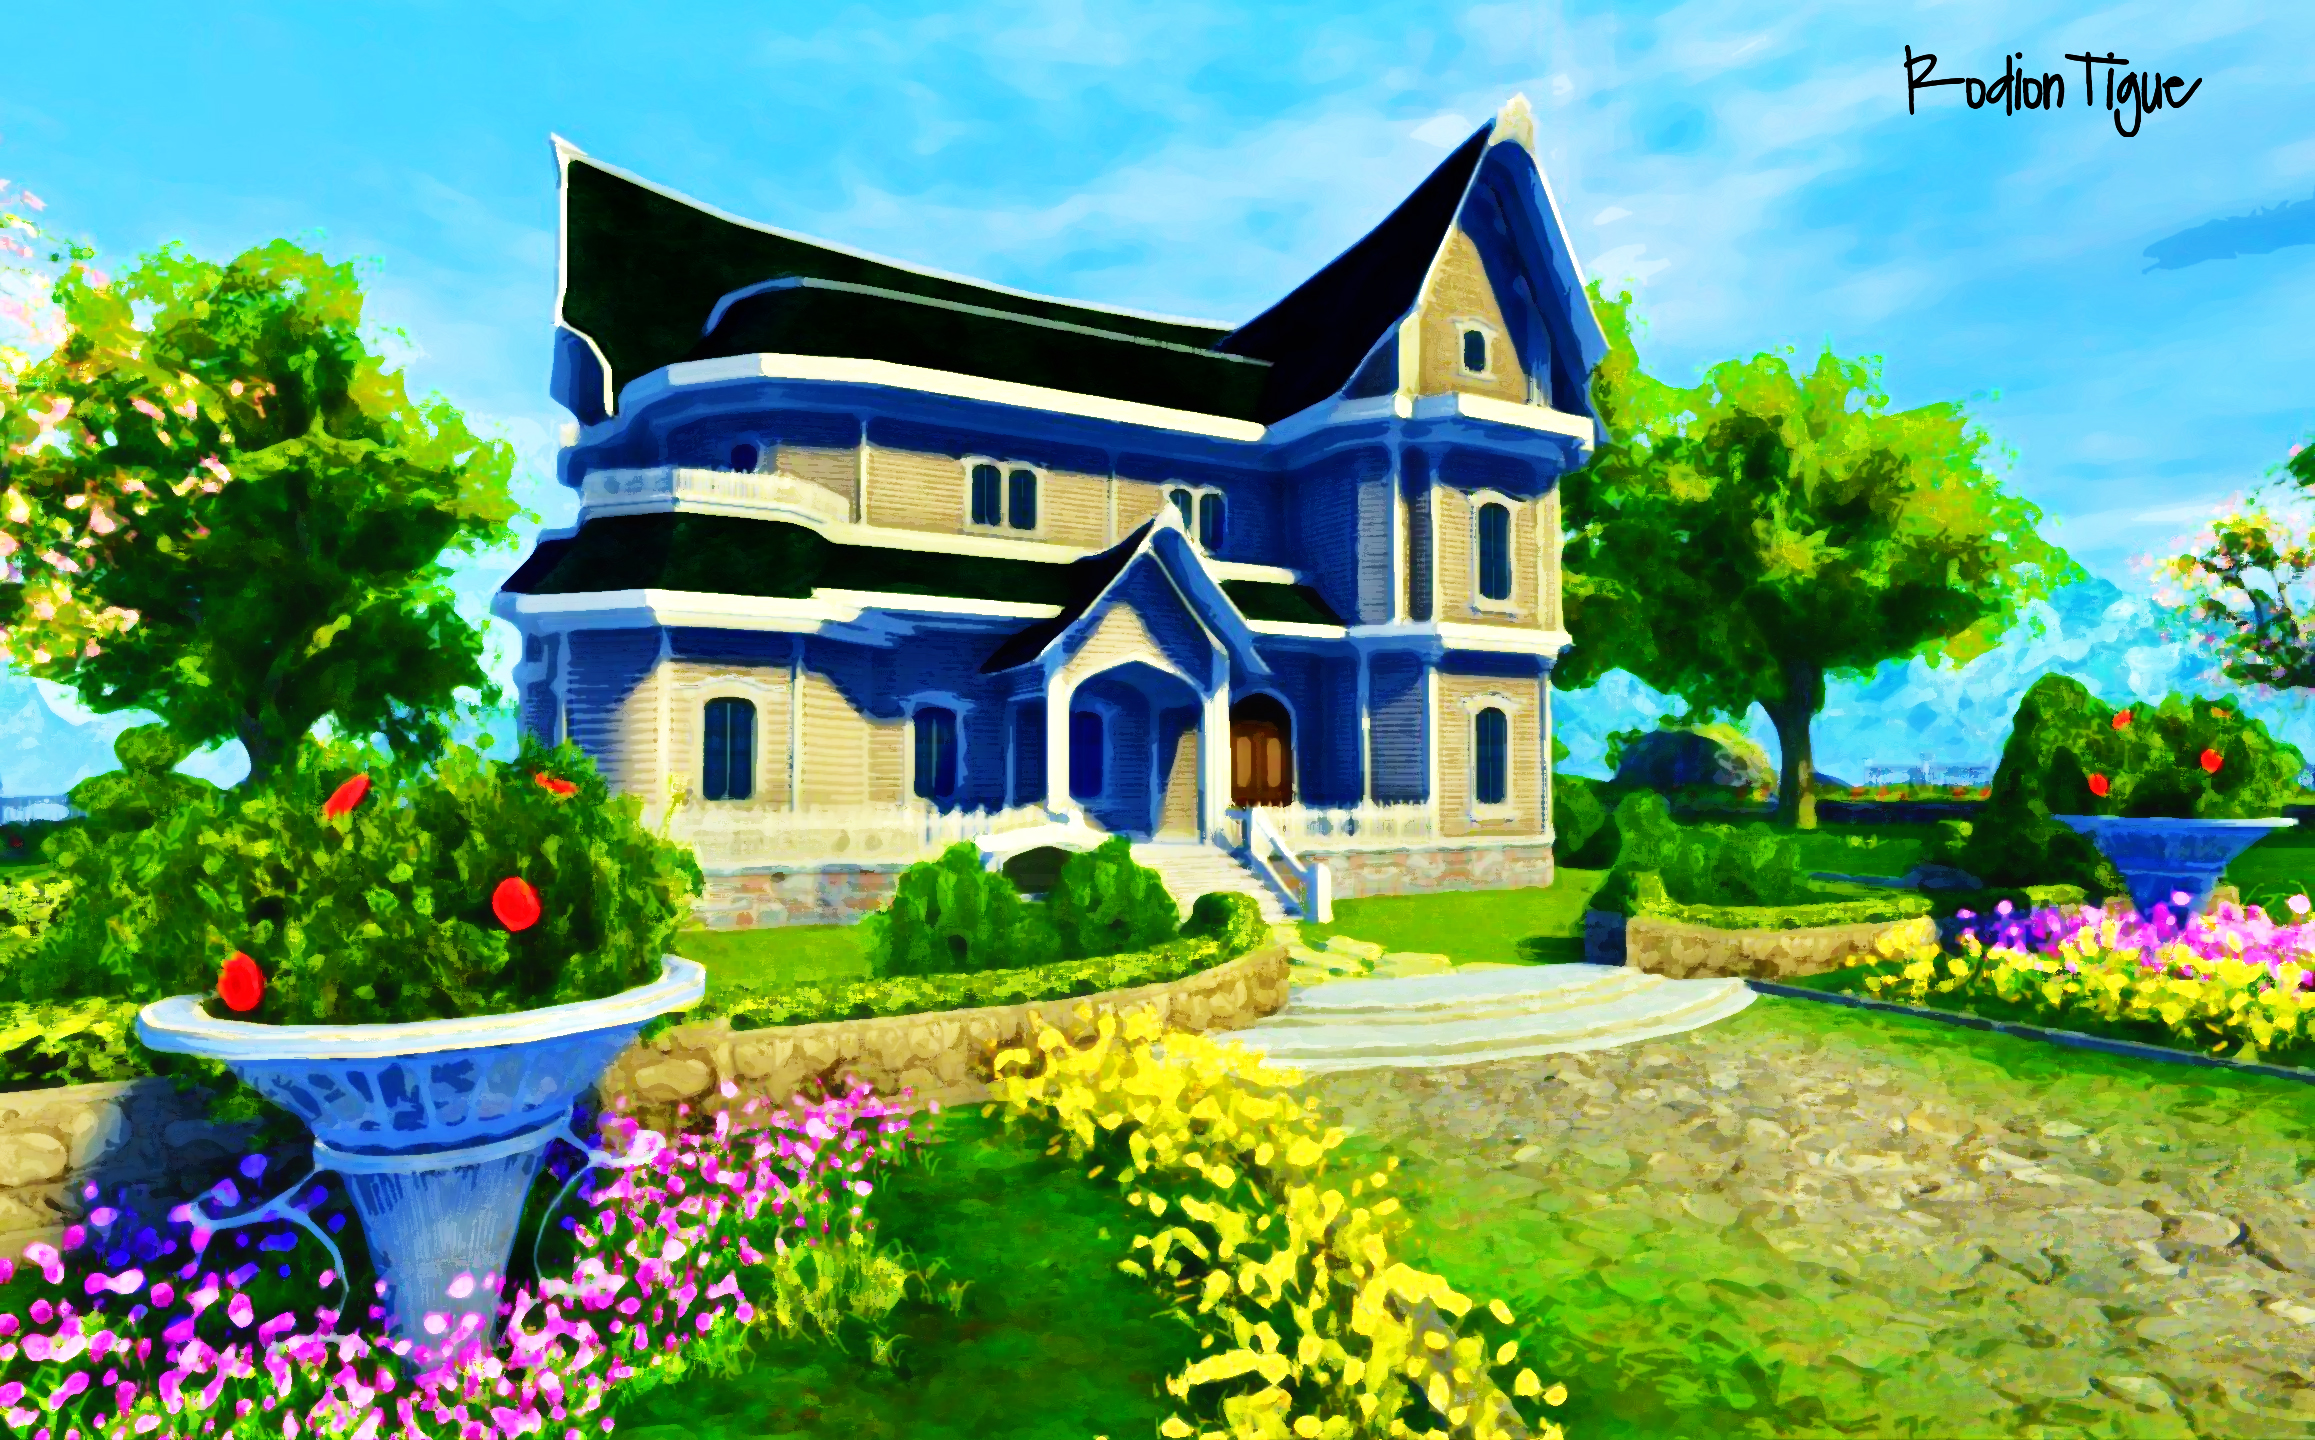 Dream home wallpaper by rodiontigue on deviantart for Home wallpaper 0